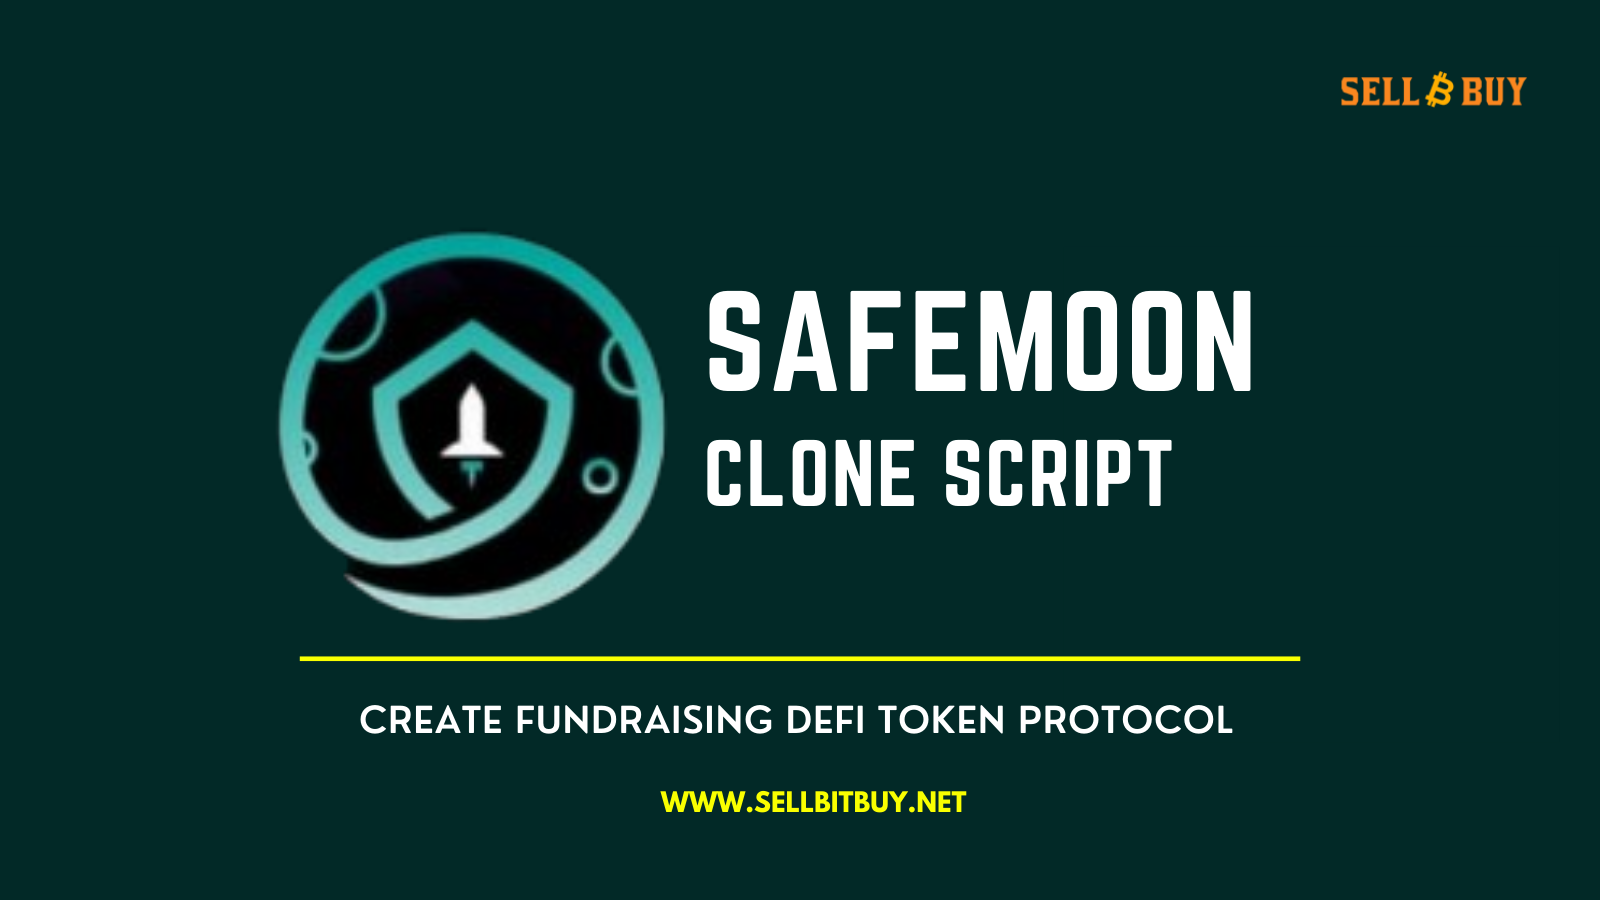 SafeMoon Clone Script - To Create A Perfect Fundraising DeFi Protocol Like SafeMoon